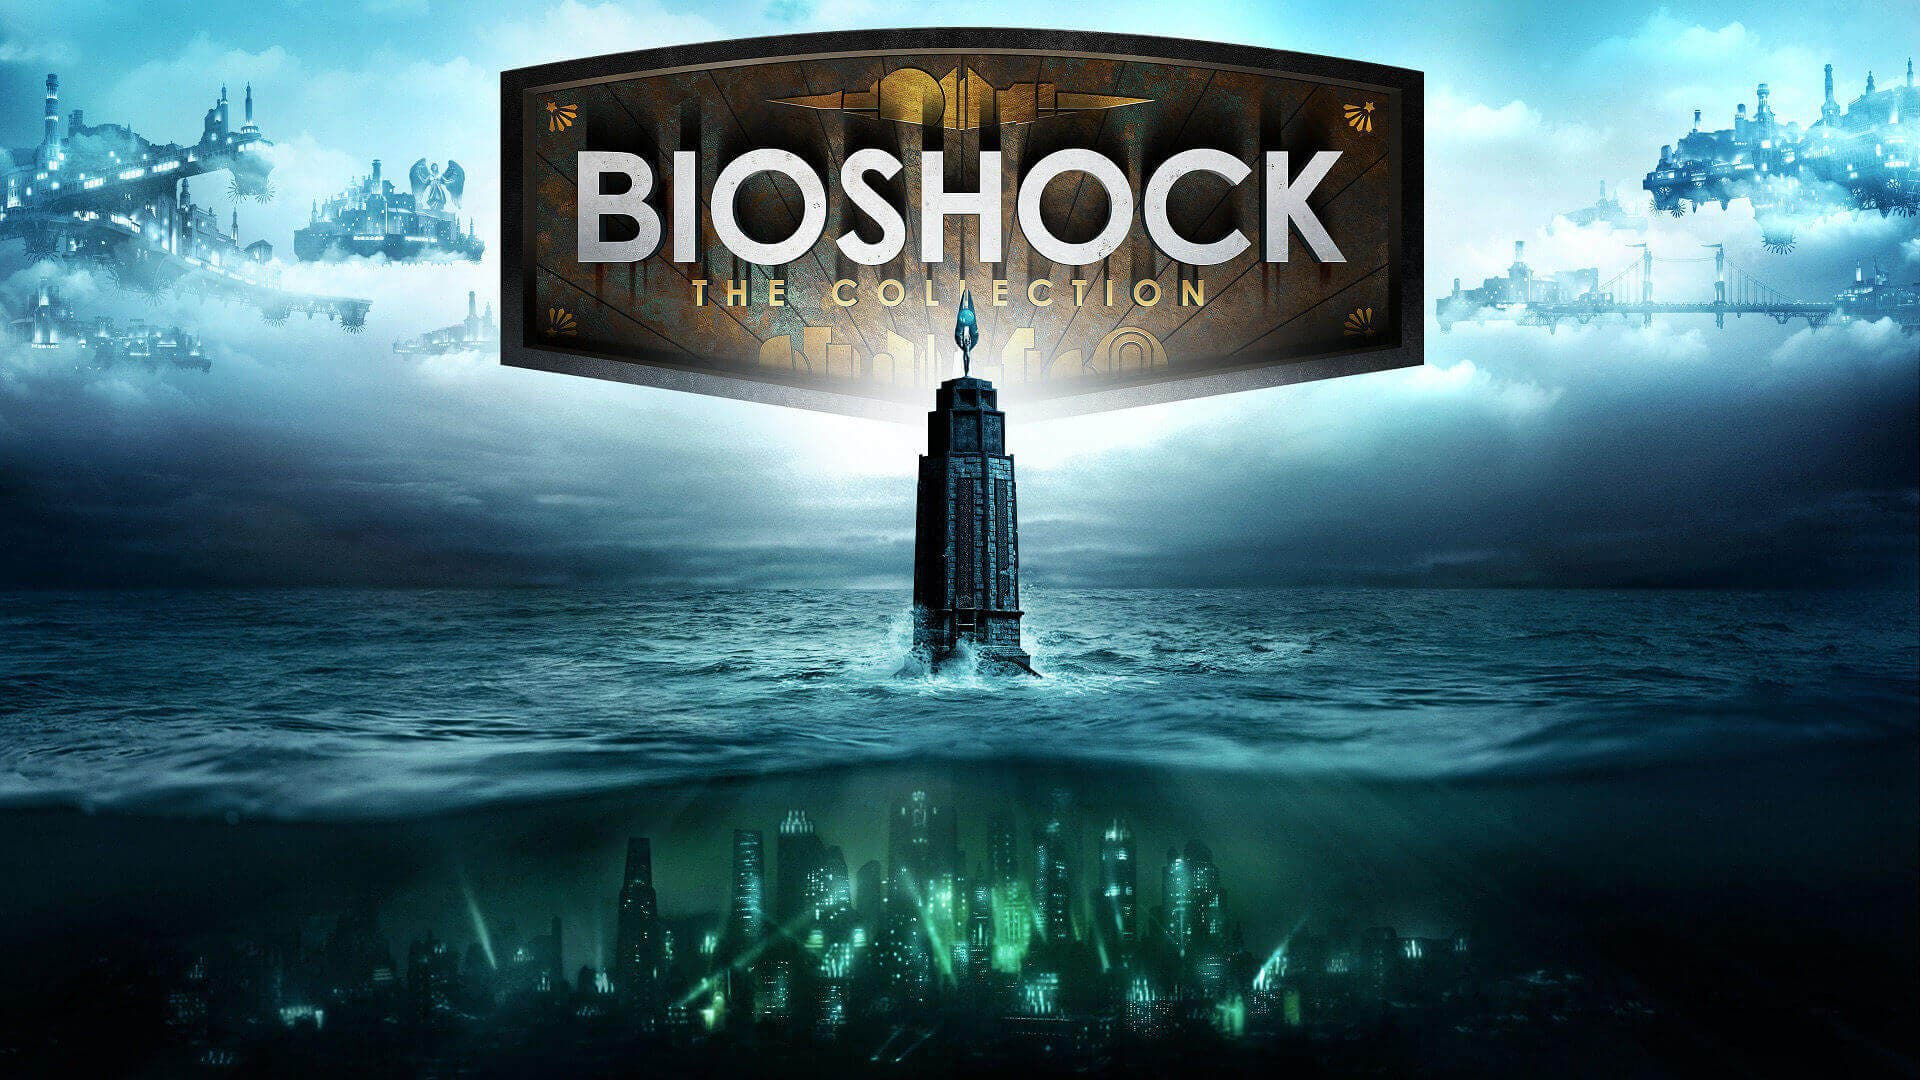 A Digital Foundry le decepciona el parche de Bioshock The Collection para Xbox One X 10